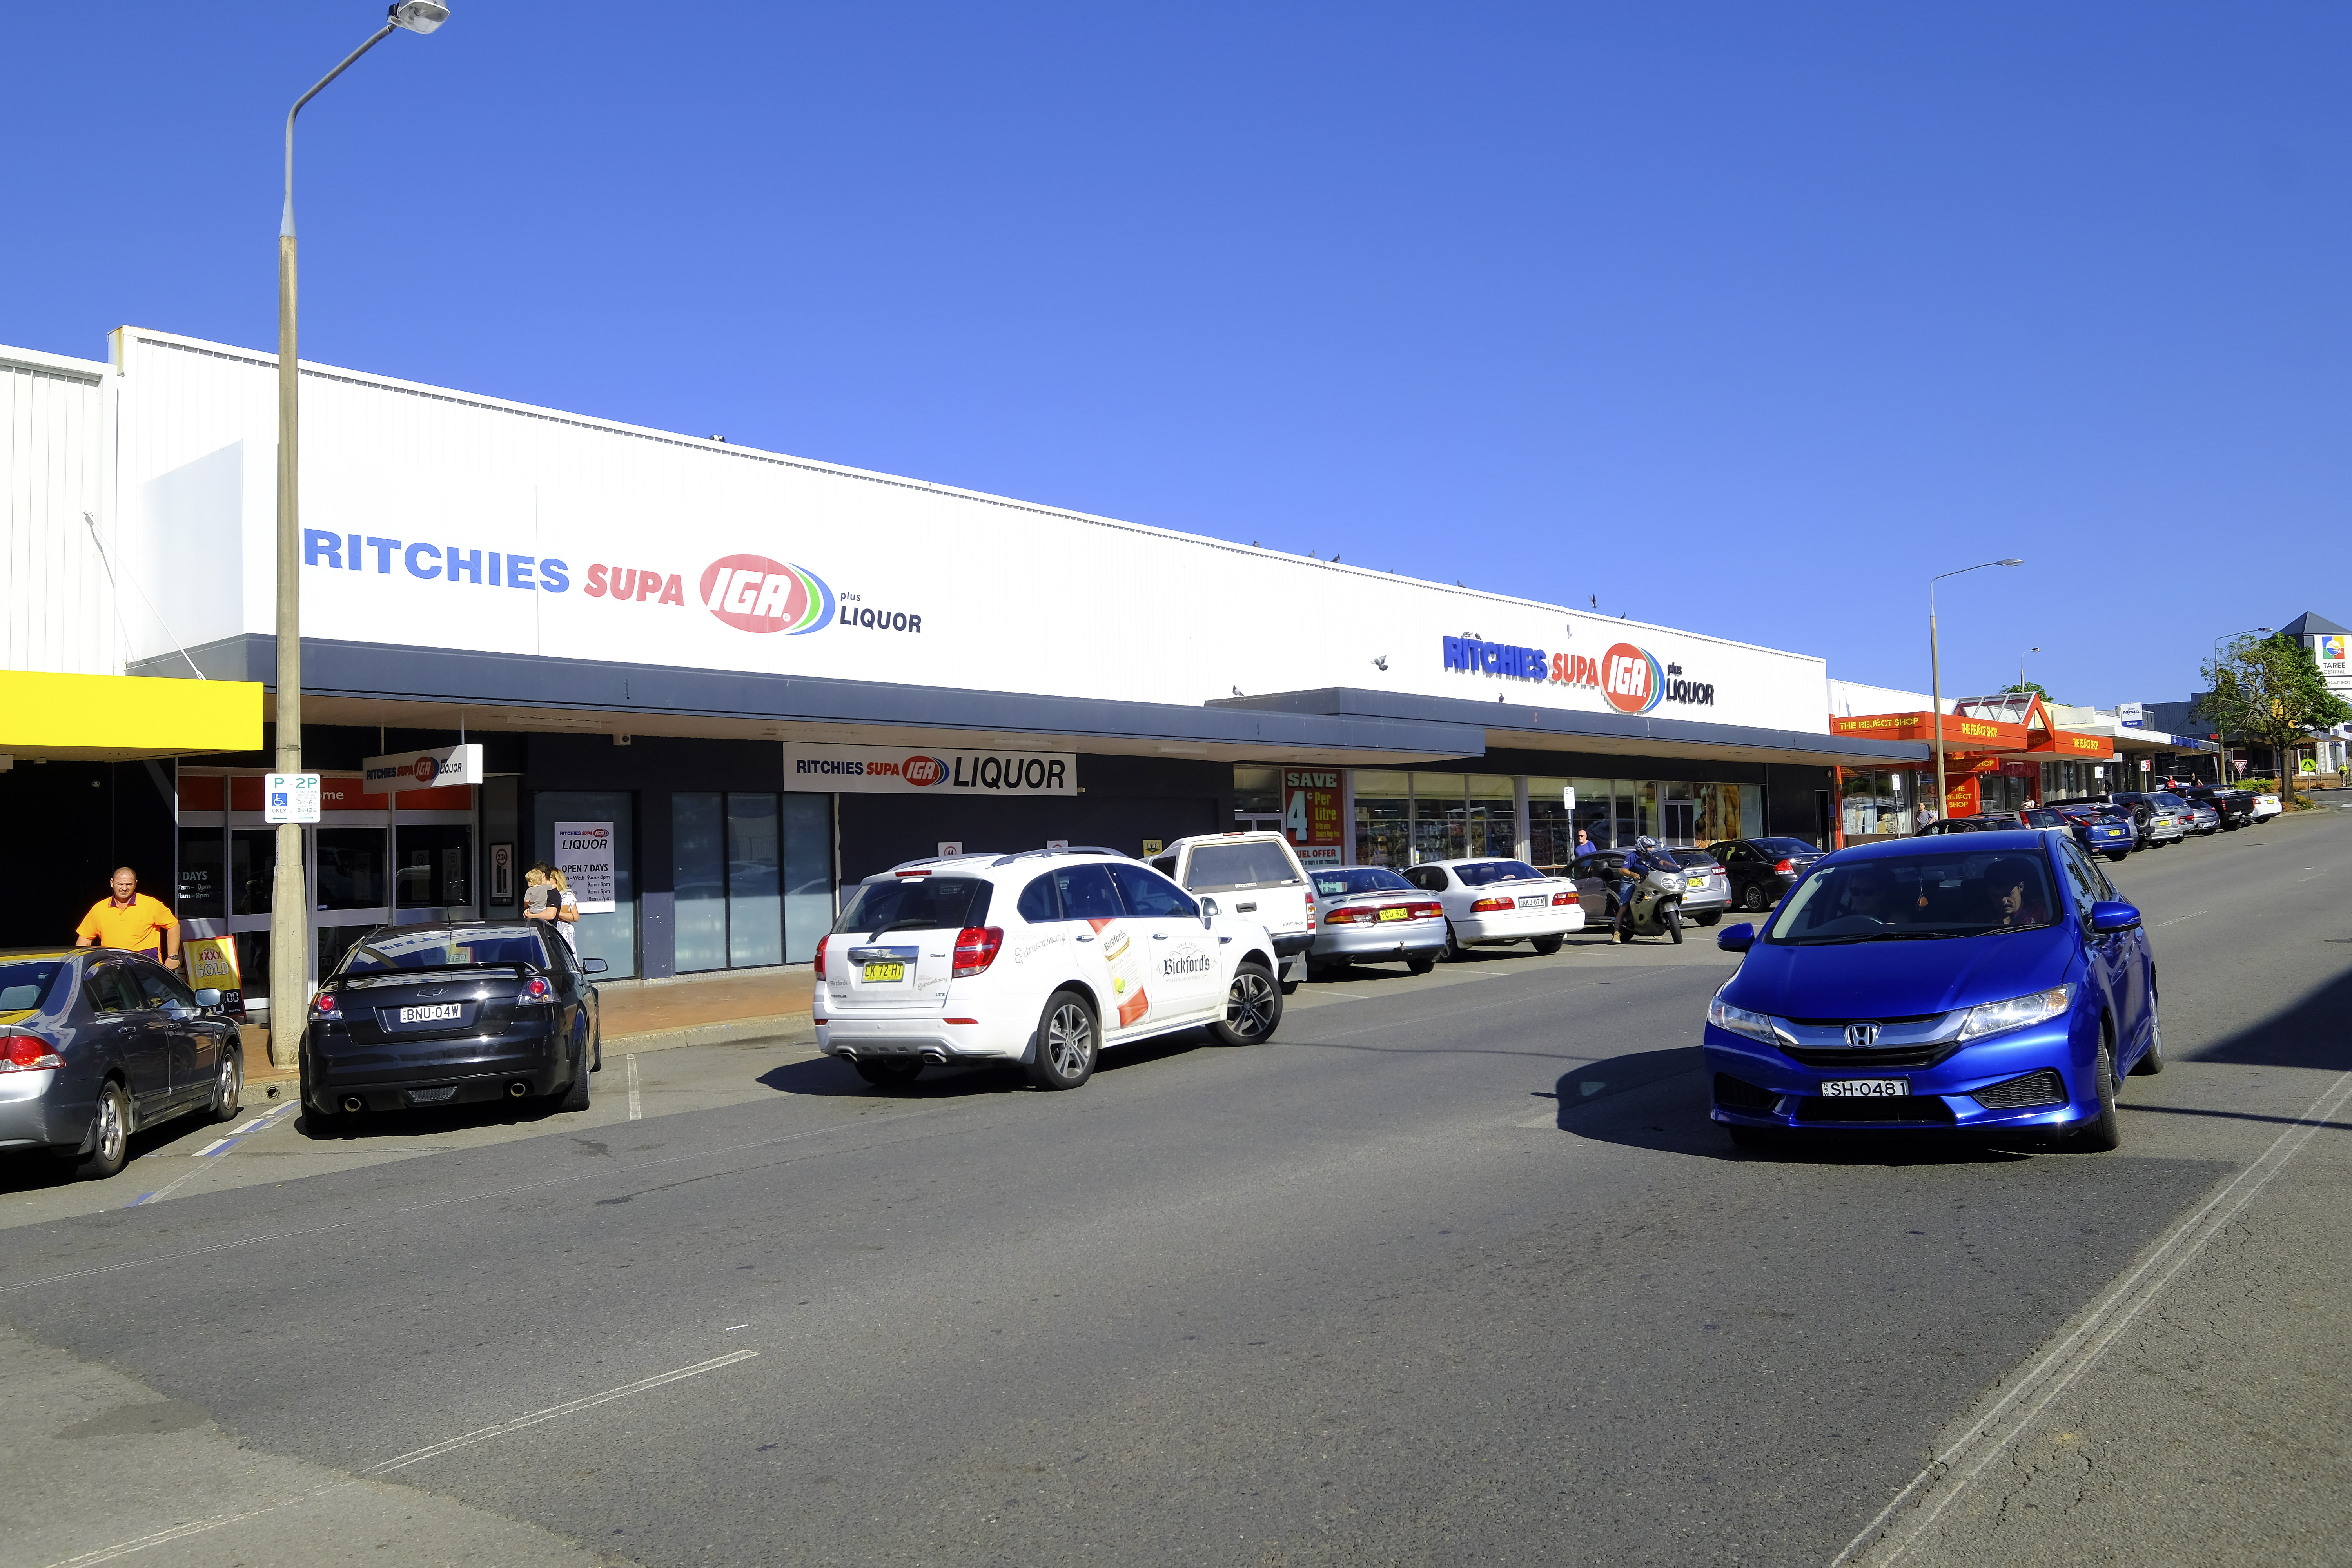 Trophy IGA Supermarket + Liquor 15 Year Direct Lease to Ritchies IGA